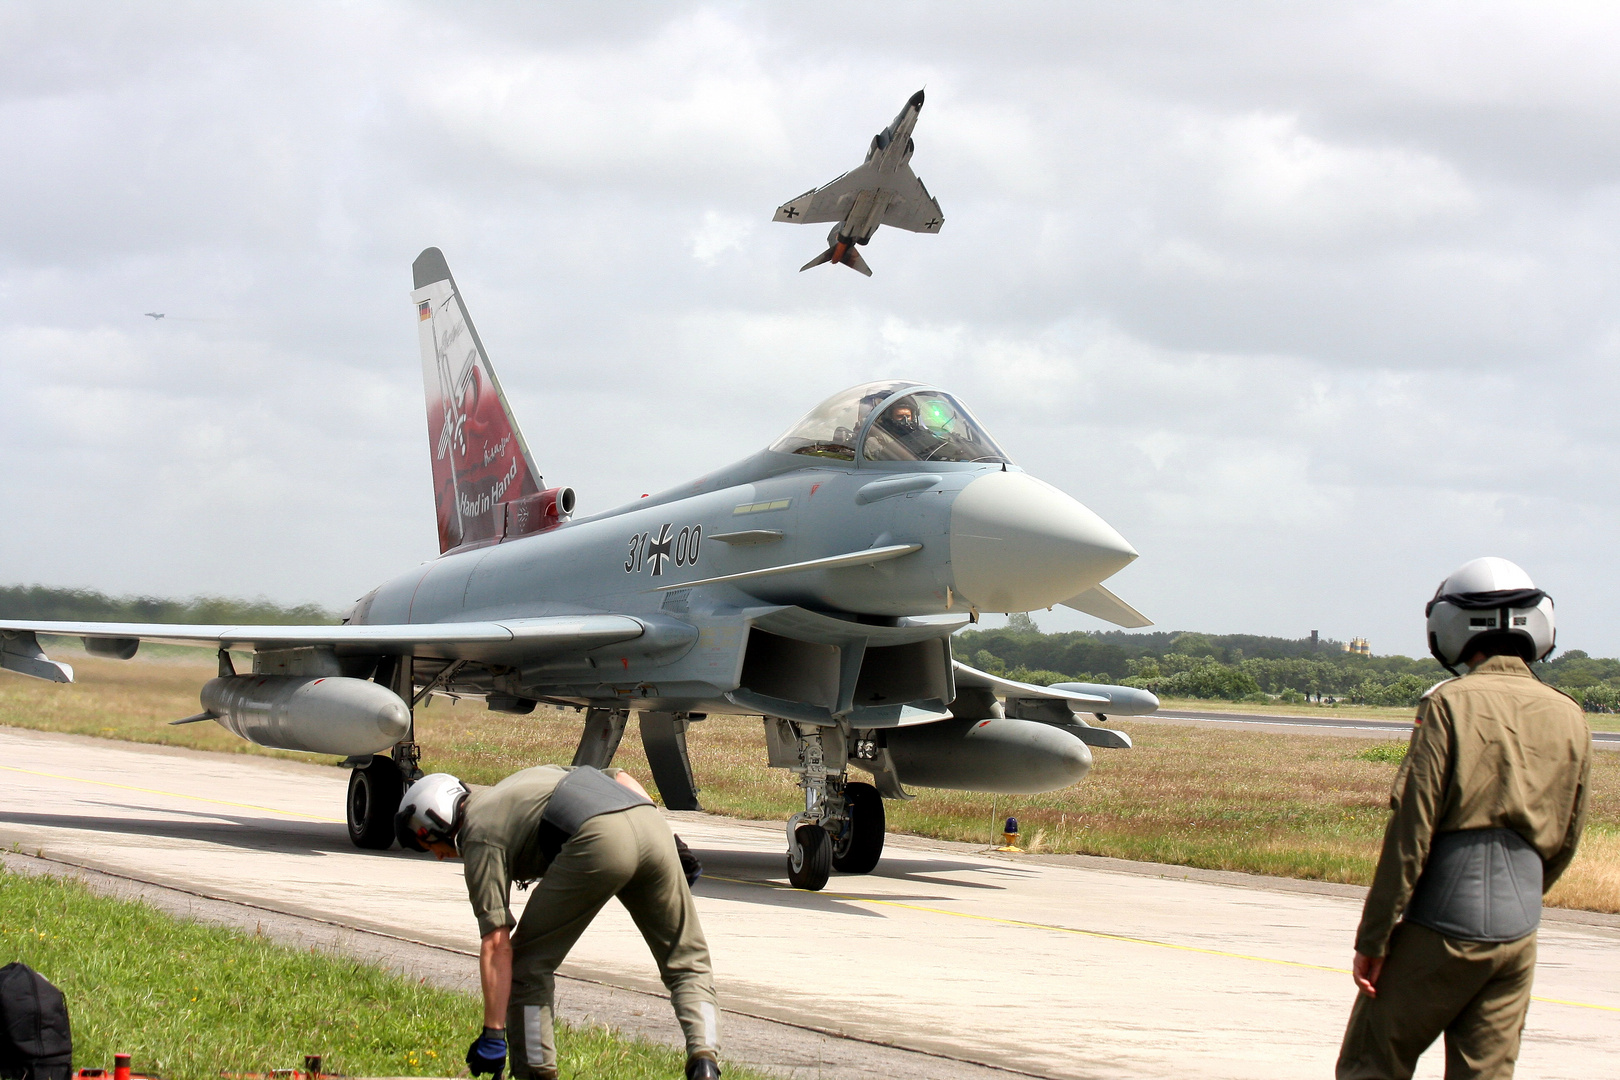 With the arrival of the Eurofighter, the Phantom is leaving Wittmund in style